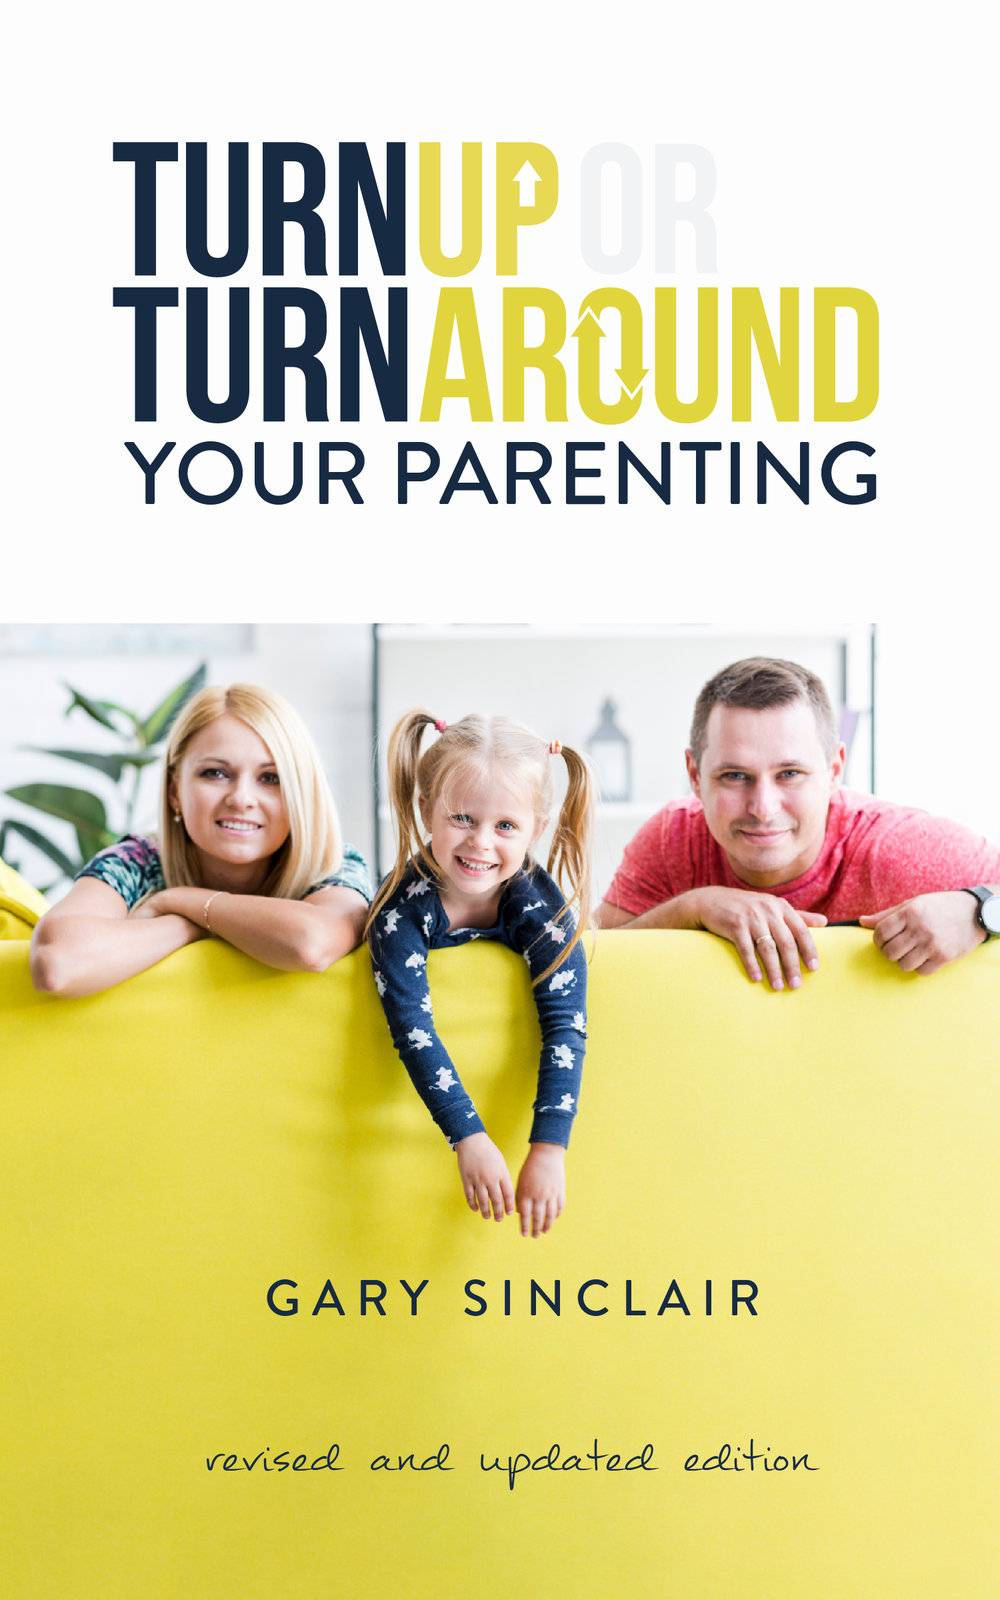 Eight chapters of everyday help and a host of ideas are sure to turn up the temperature on or literally turn around your parenting!